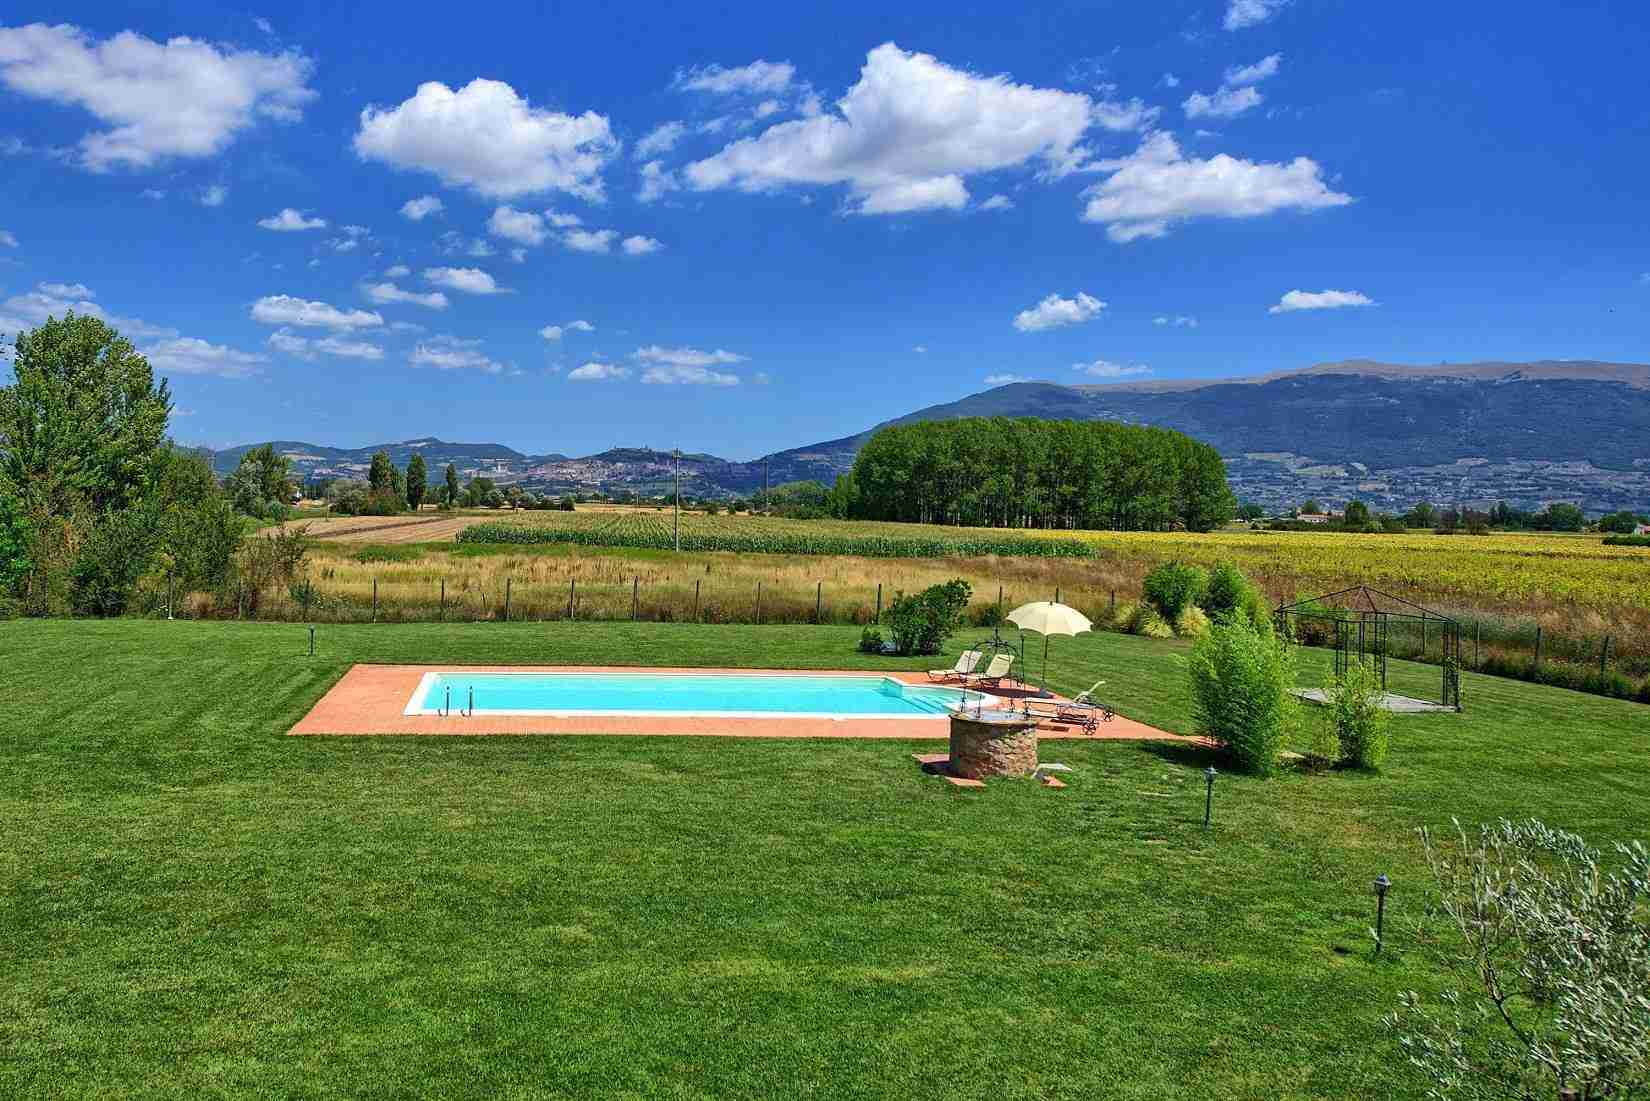 13 Assisi garden with pool